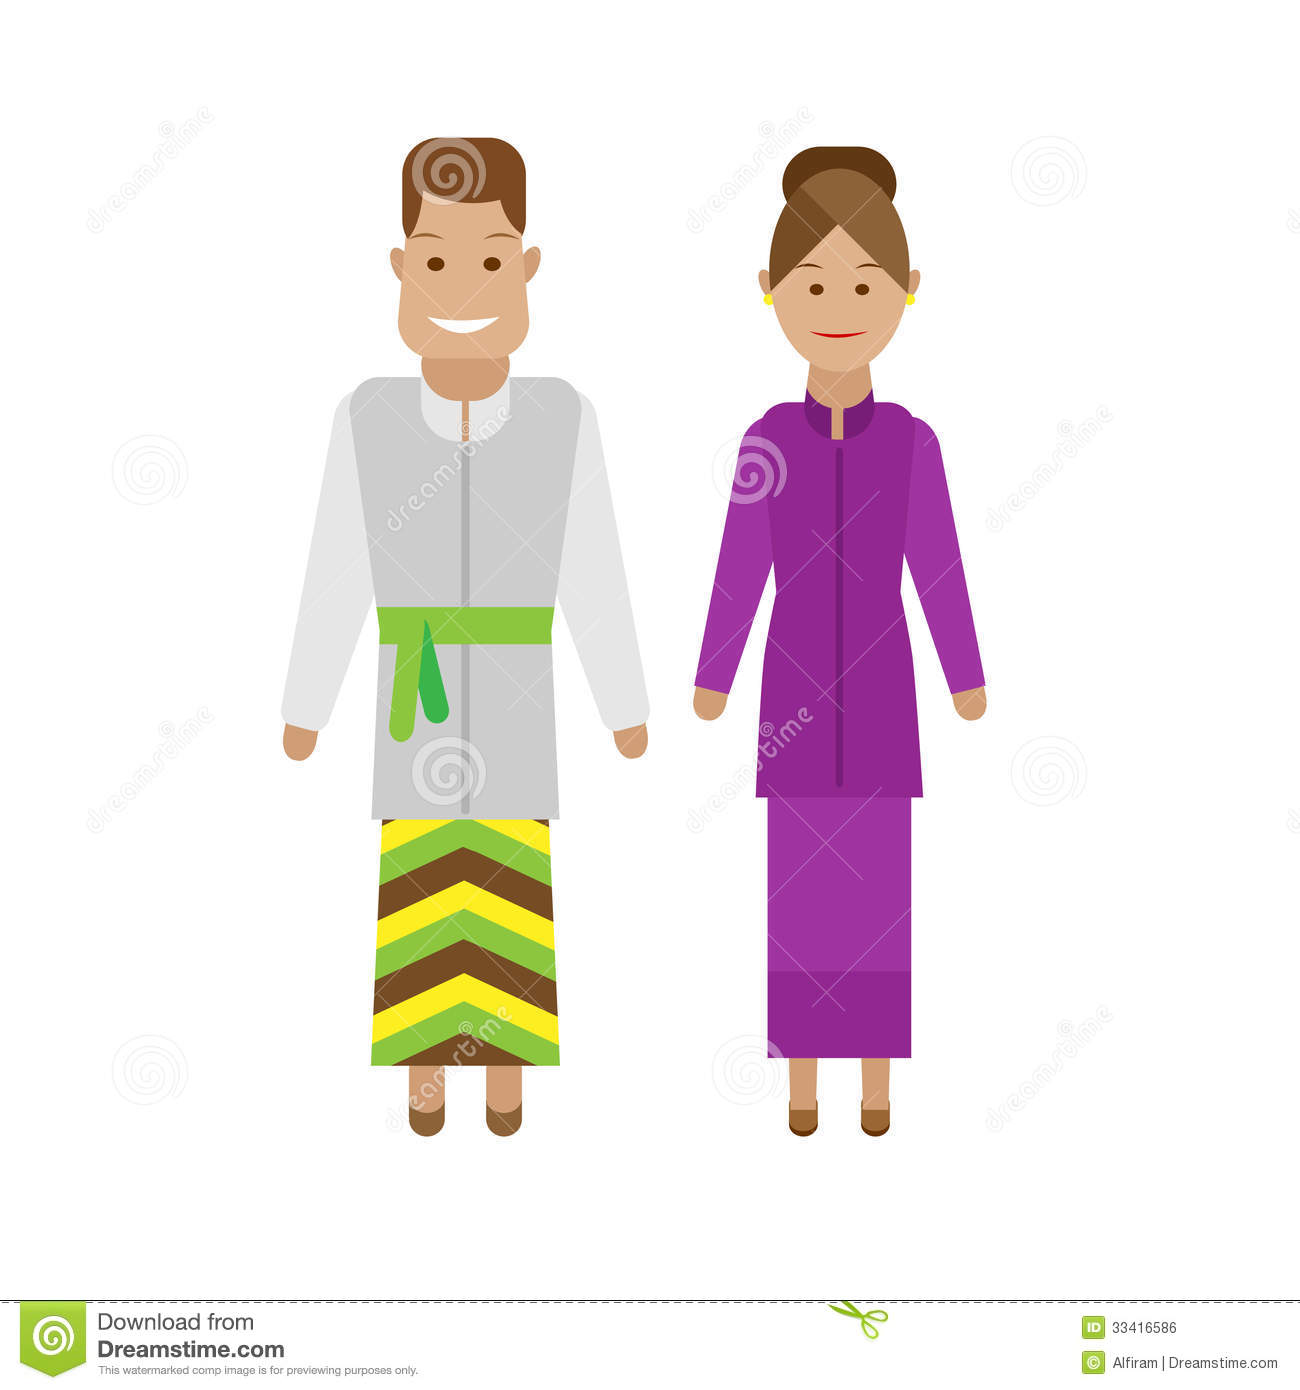 Lao National Dress Royalty Free Stock Image - Image: 33416586